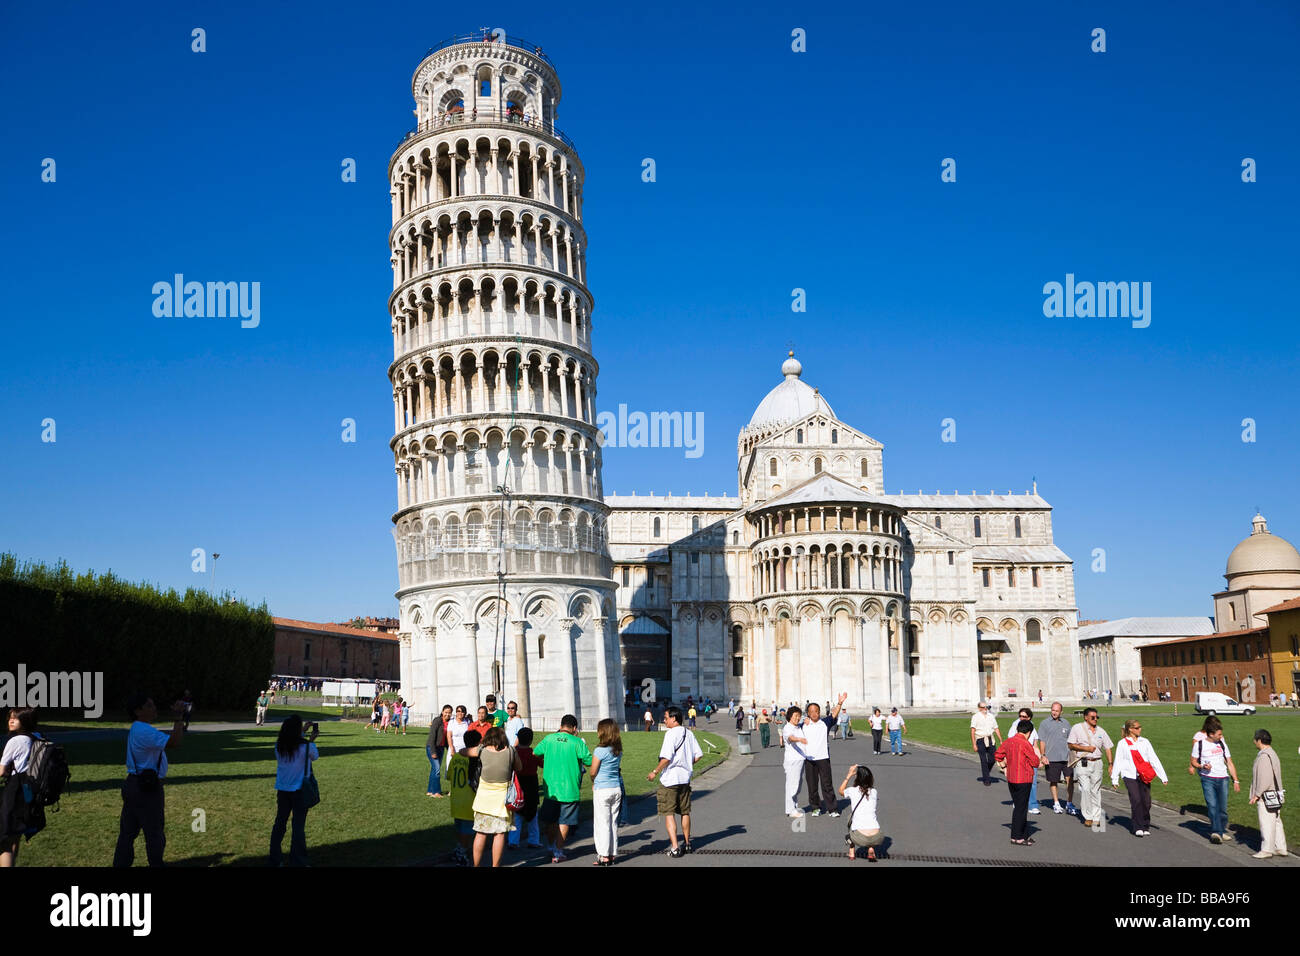 Leaning Tower of Pisa with Cathedral of Santa Maria Assunta, Piazza dei Miracoli, Tuscany, Italy, Europe Stock Photo